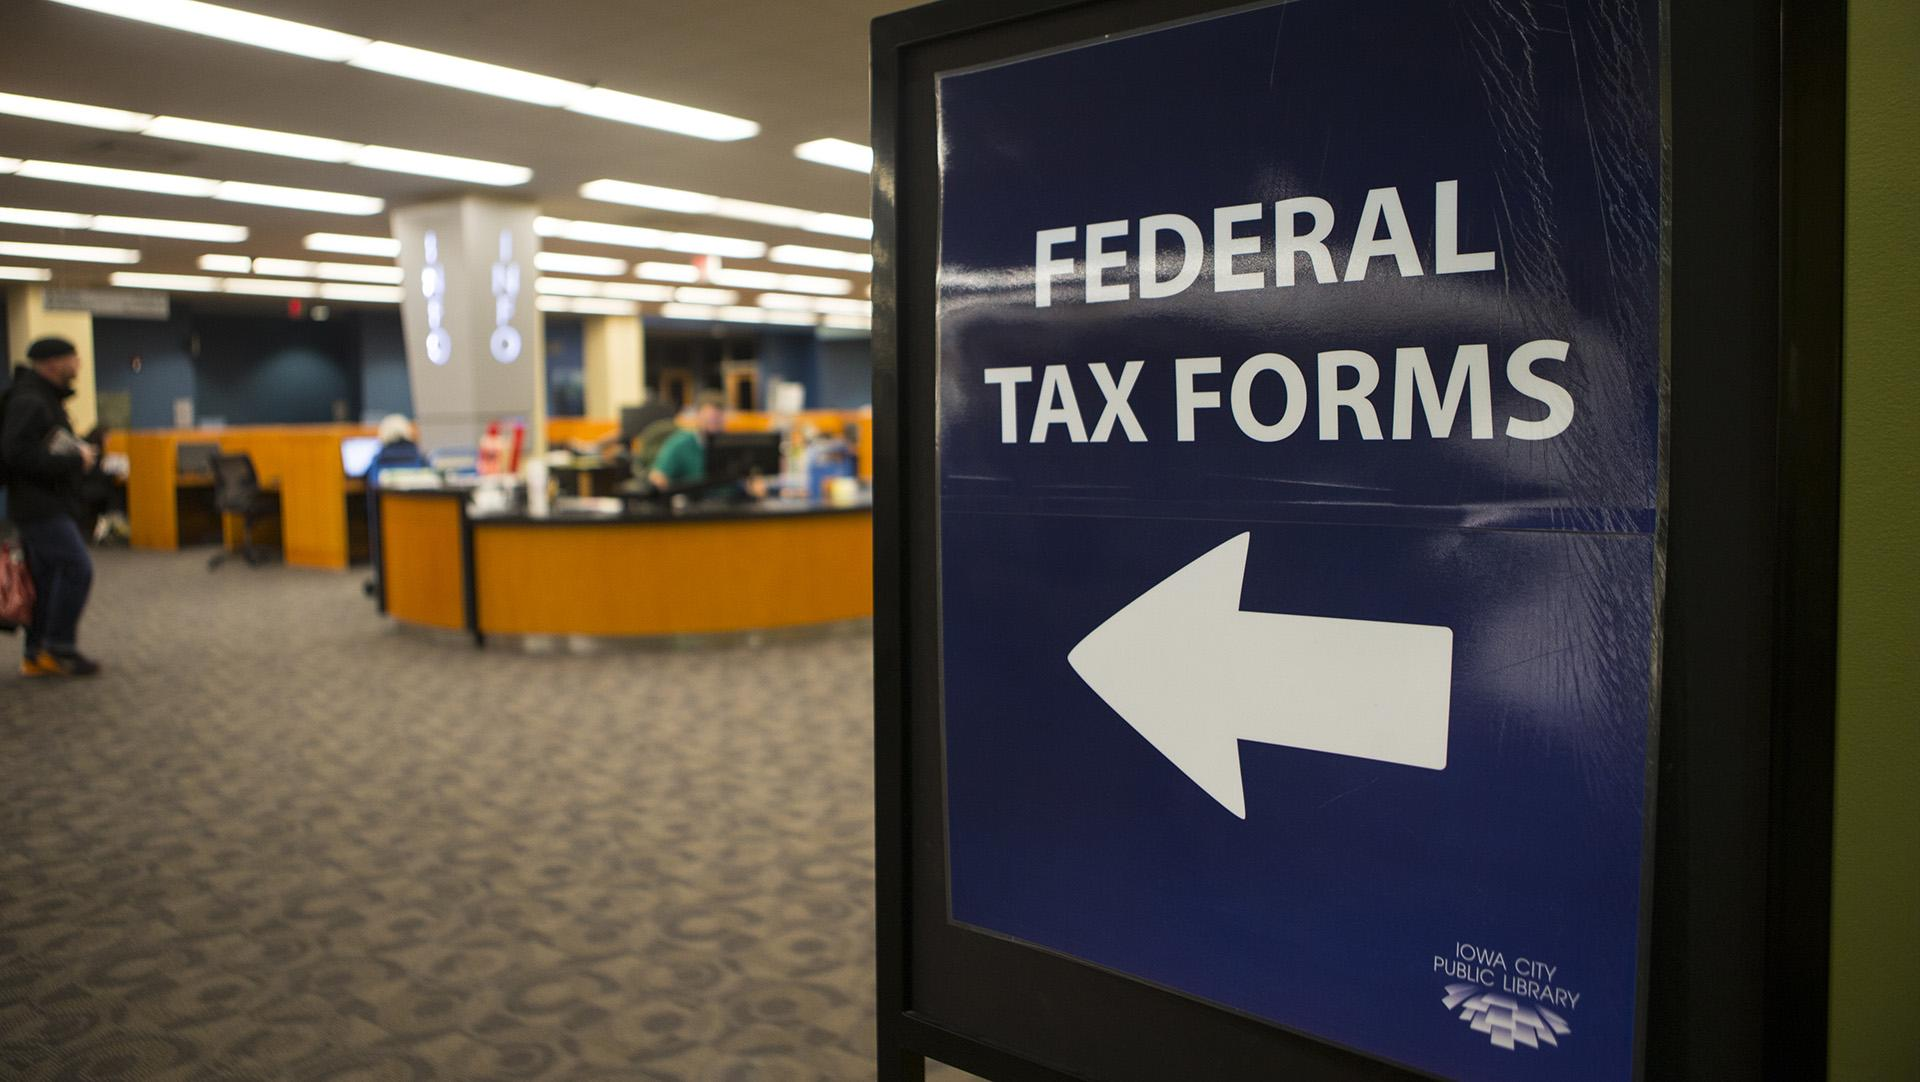 Guest opinion: GOP's tax cut proposal promises eventual tax increases